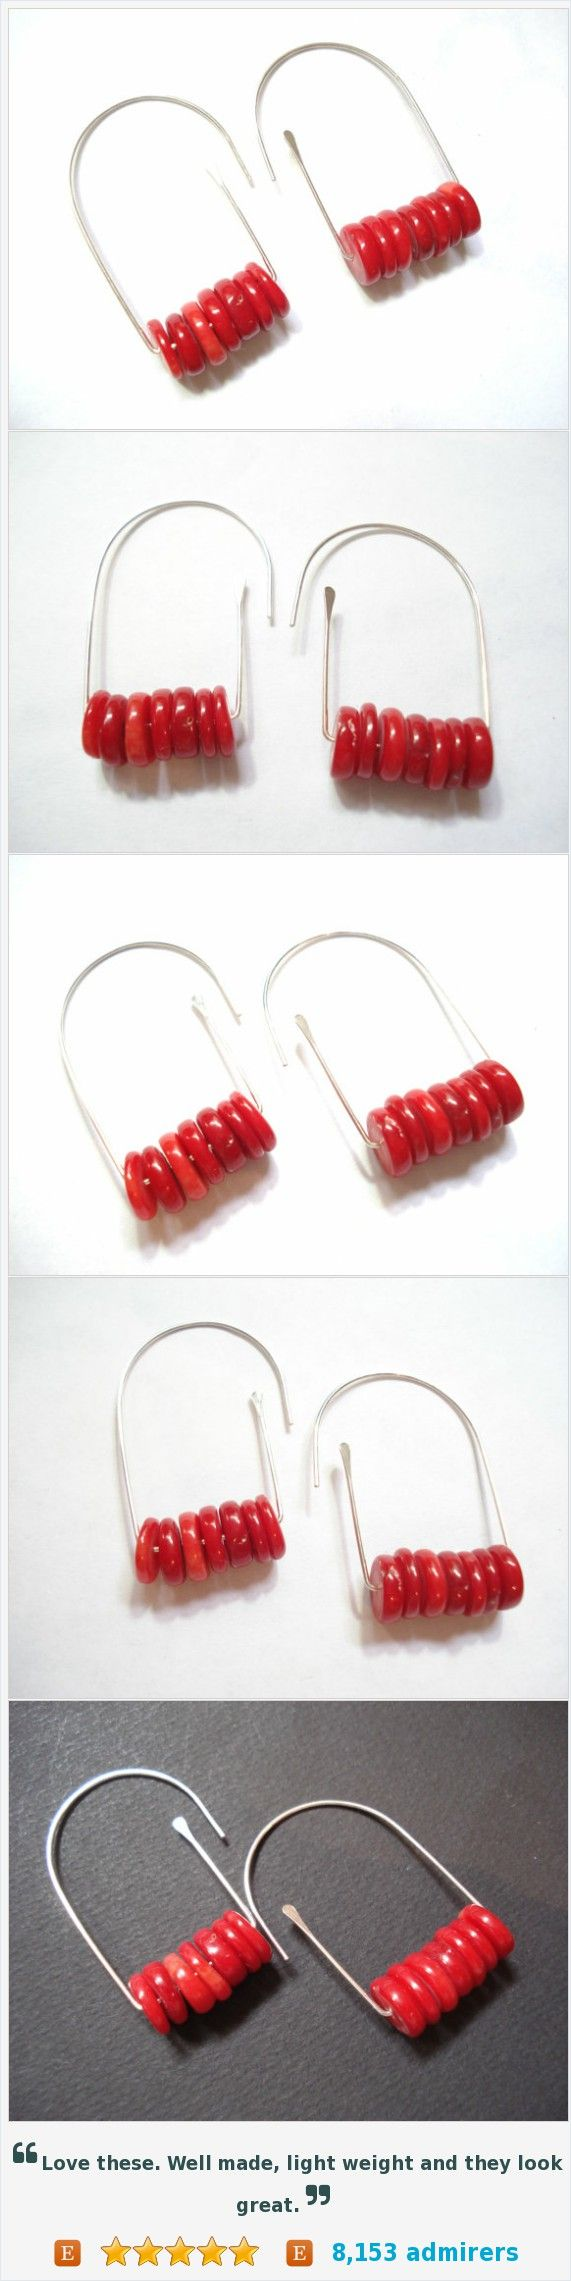 Sterling Silver Coral Hoop Earrings, Handmade Coral Earrings, Delicate Modern Silver Earrings, Sterling Silver Minimal Earrings https://www.etsy.com/listing/480969445/